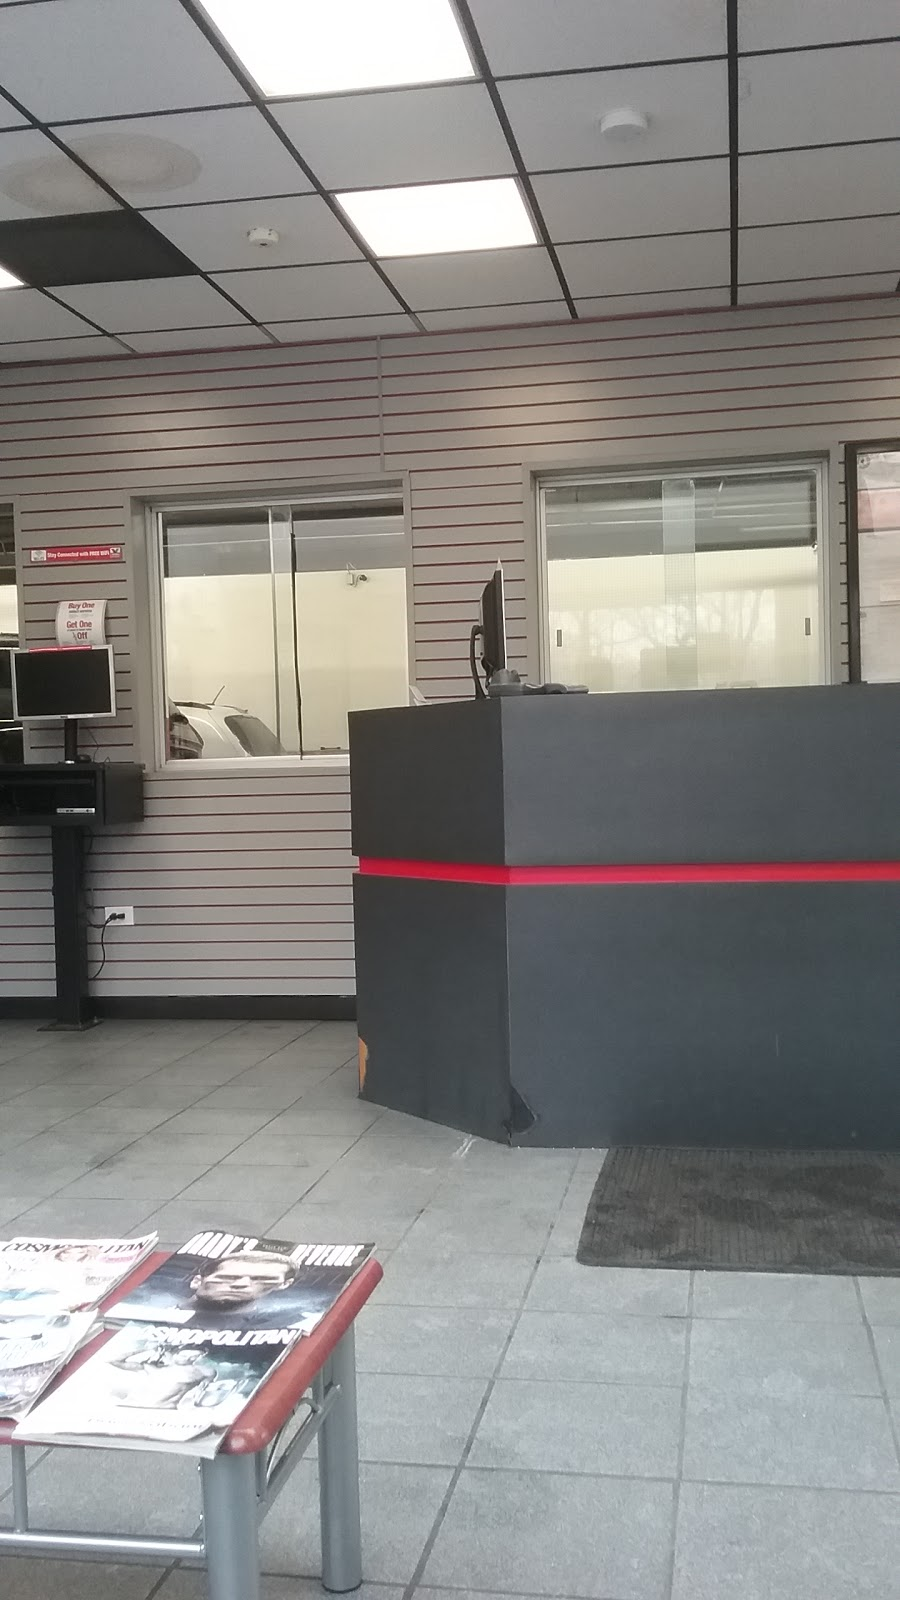 Valvoline Instant Oil Change - car repair  | Photo 3 of 10 | Address: 1229 Yonkers Ave, Yonkers, NY 10704, USA | Phone: (914) 776-0639